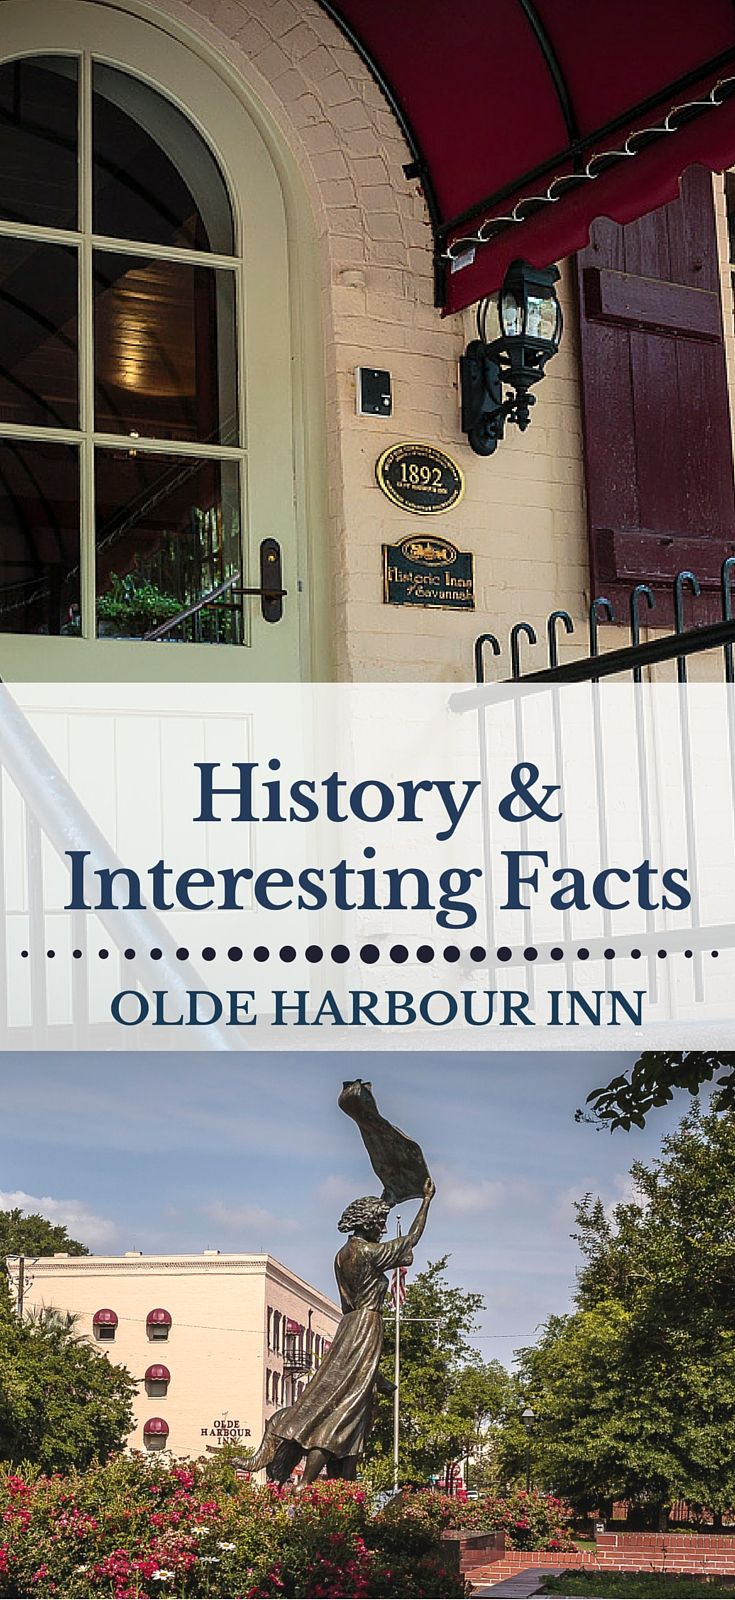 History of Olde Harbour Inn - Hotel in Savannah's Historic District